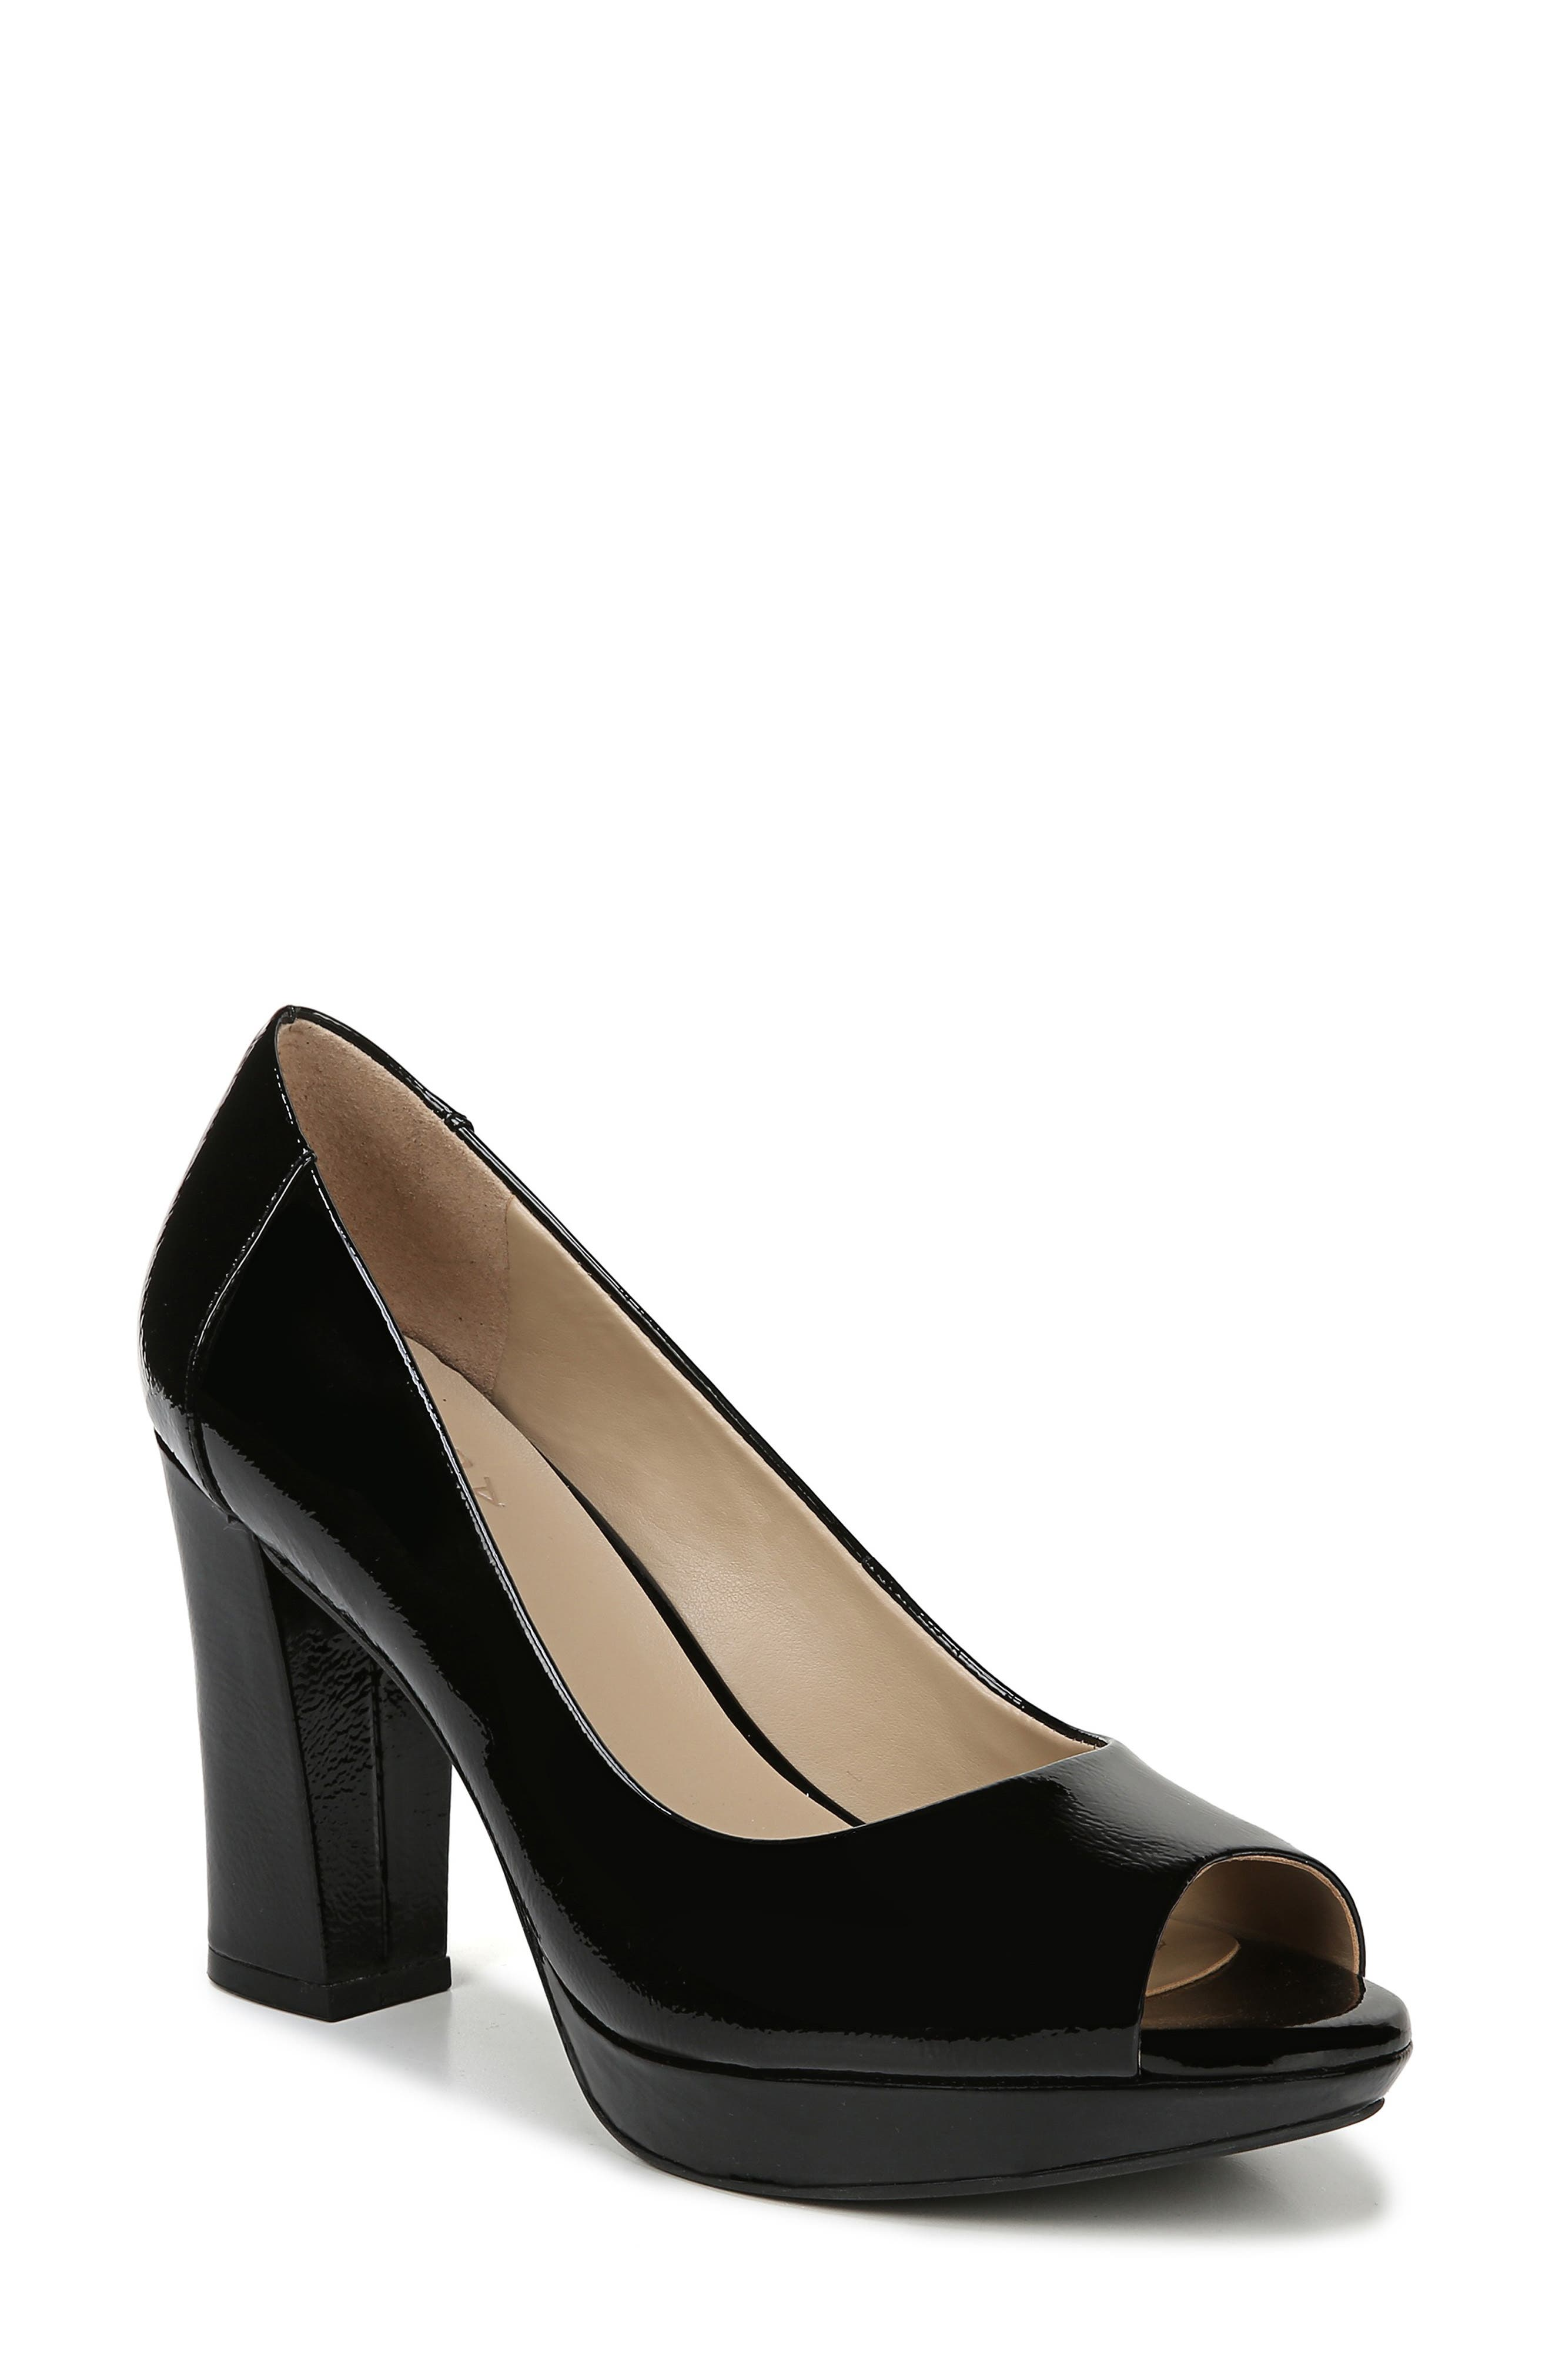 Naturalizer Amie Pump, Black